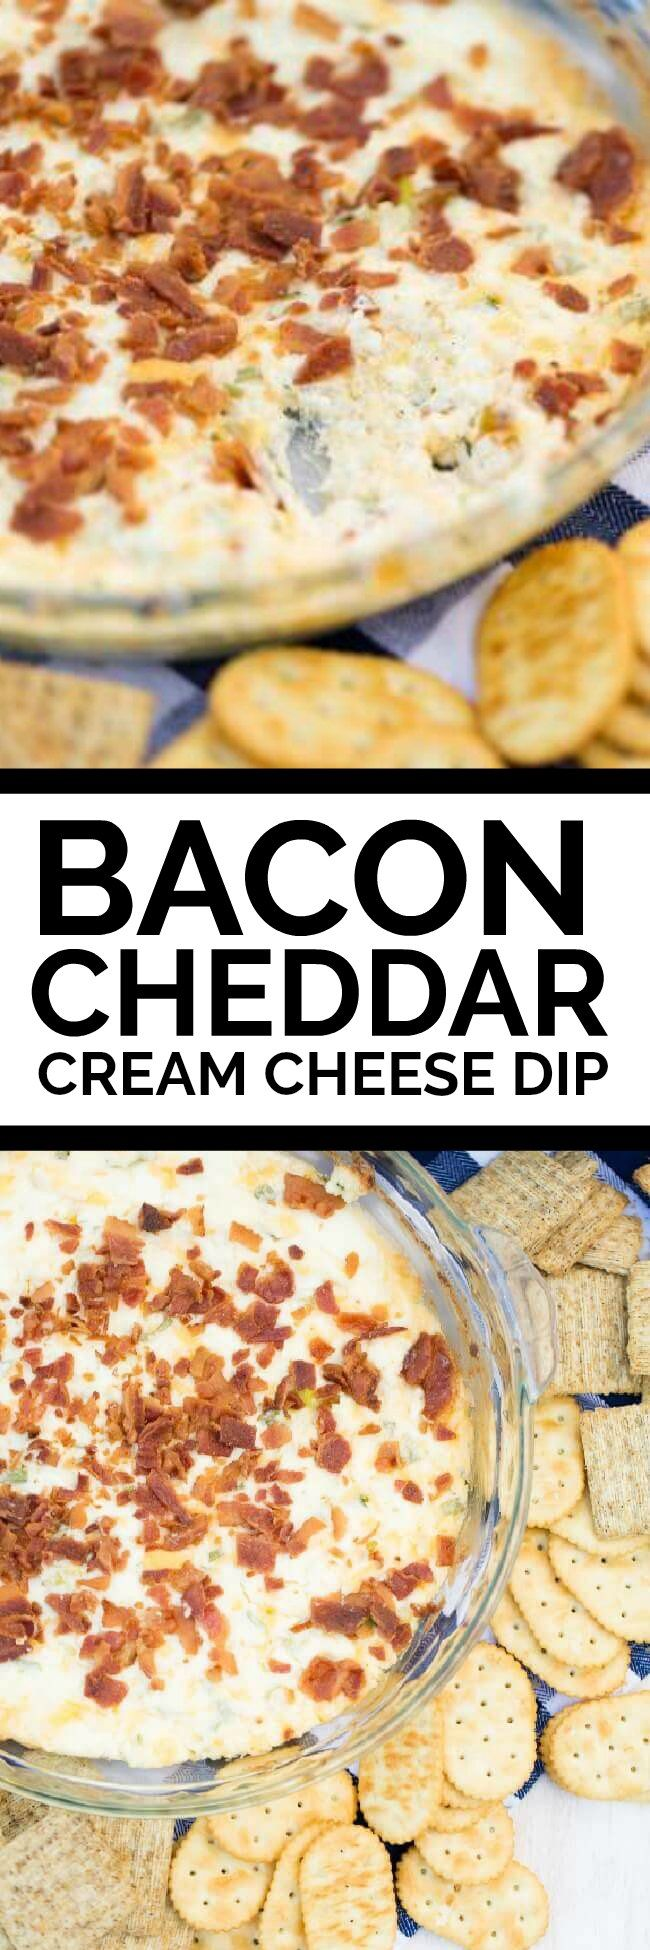 Bacon Cheddar Cream Cheese Dip Recipe